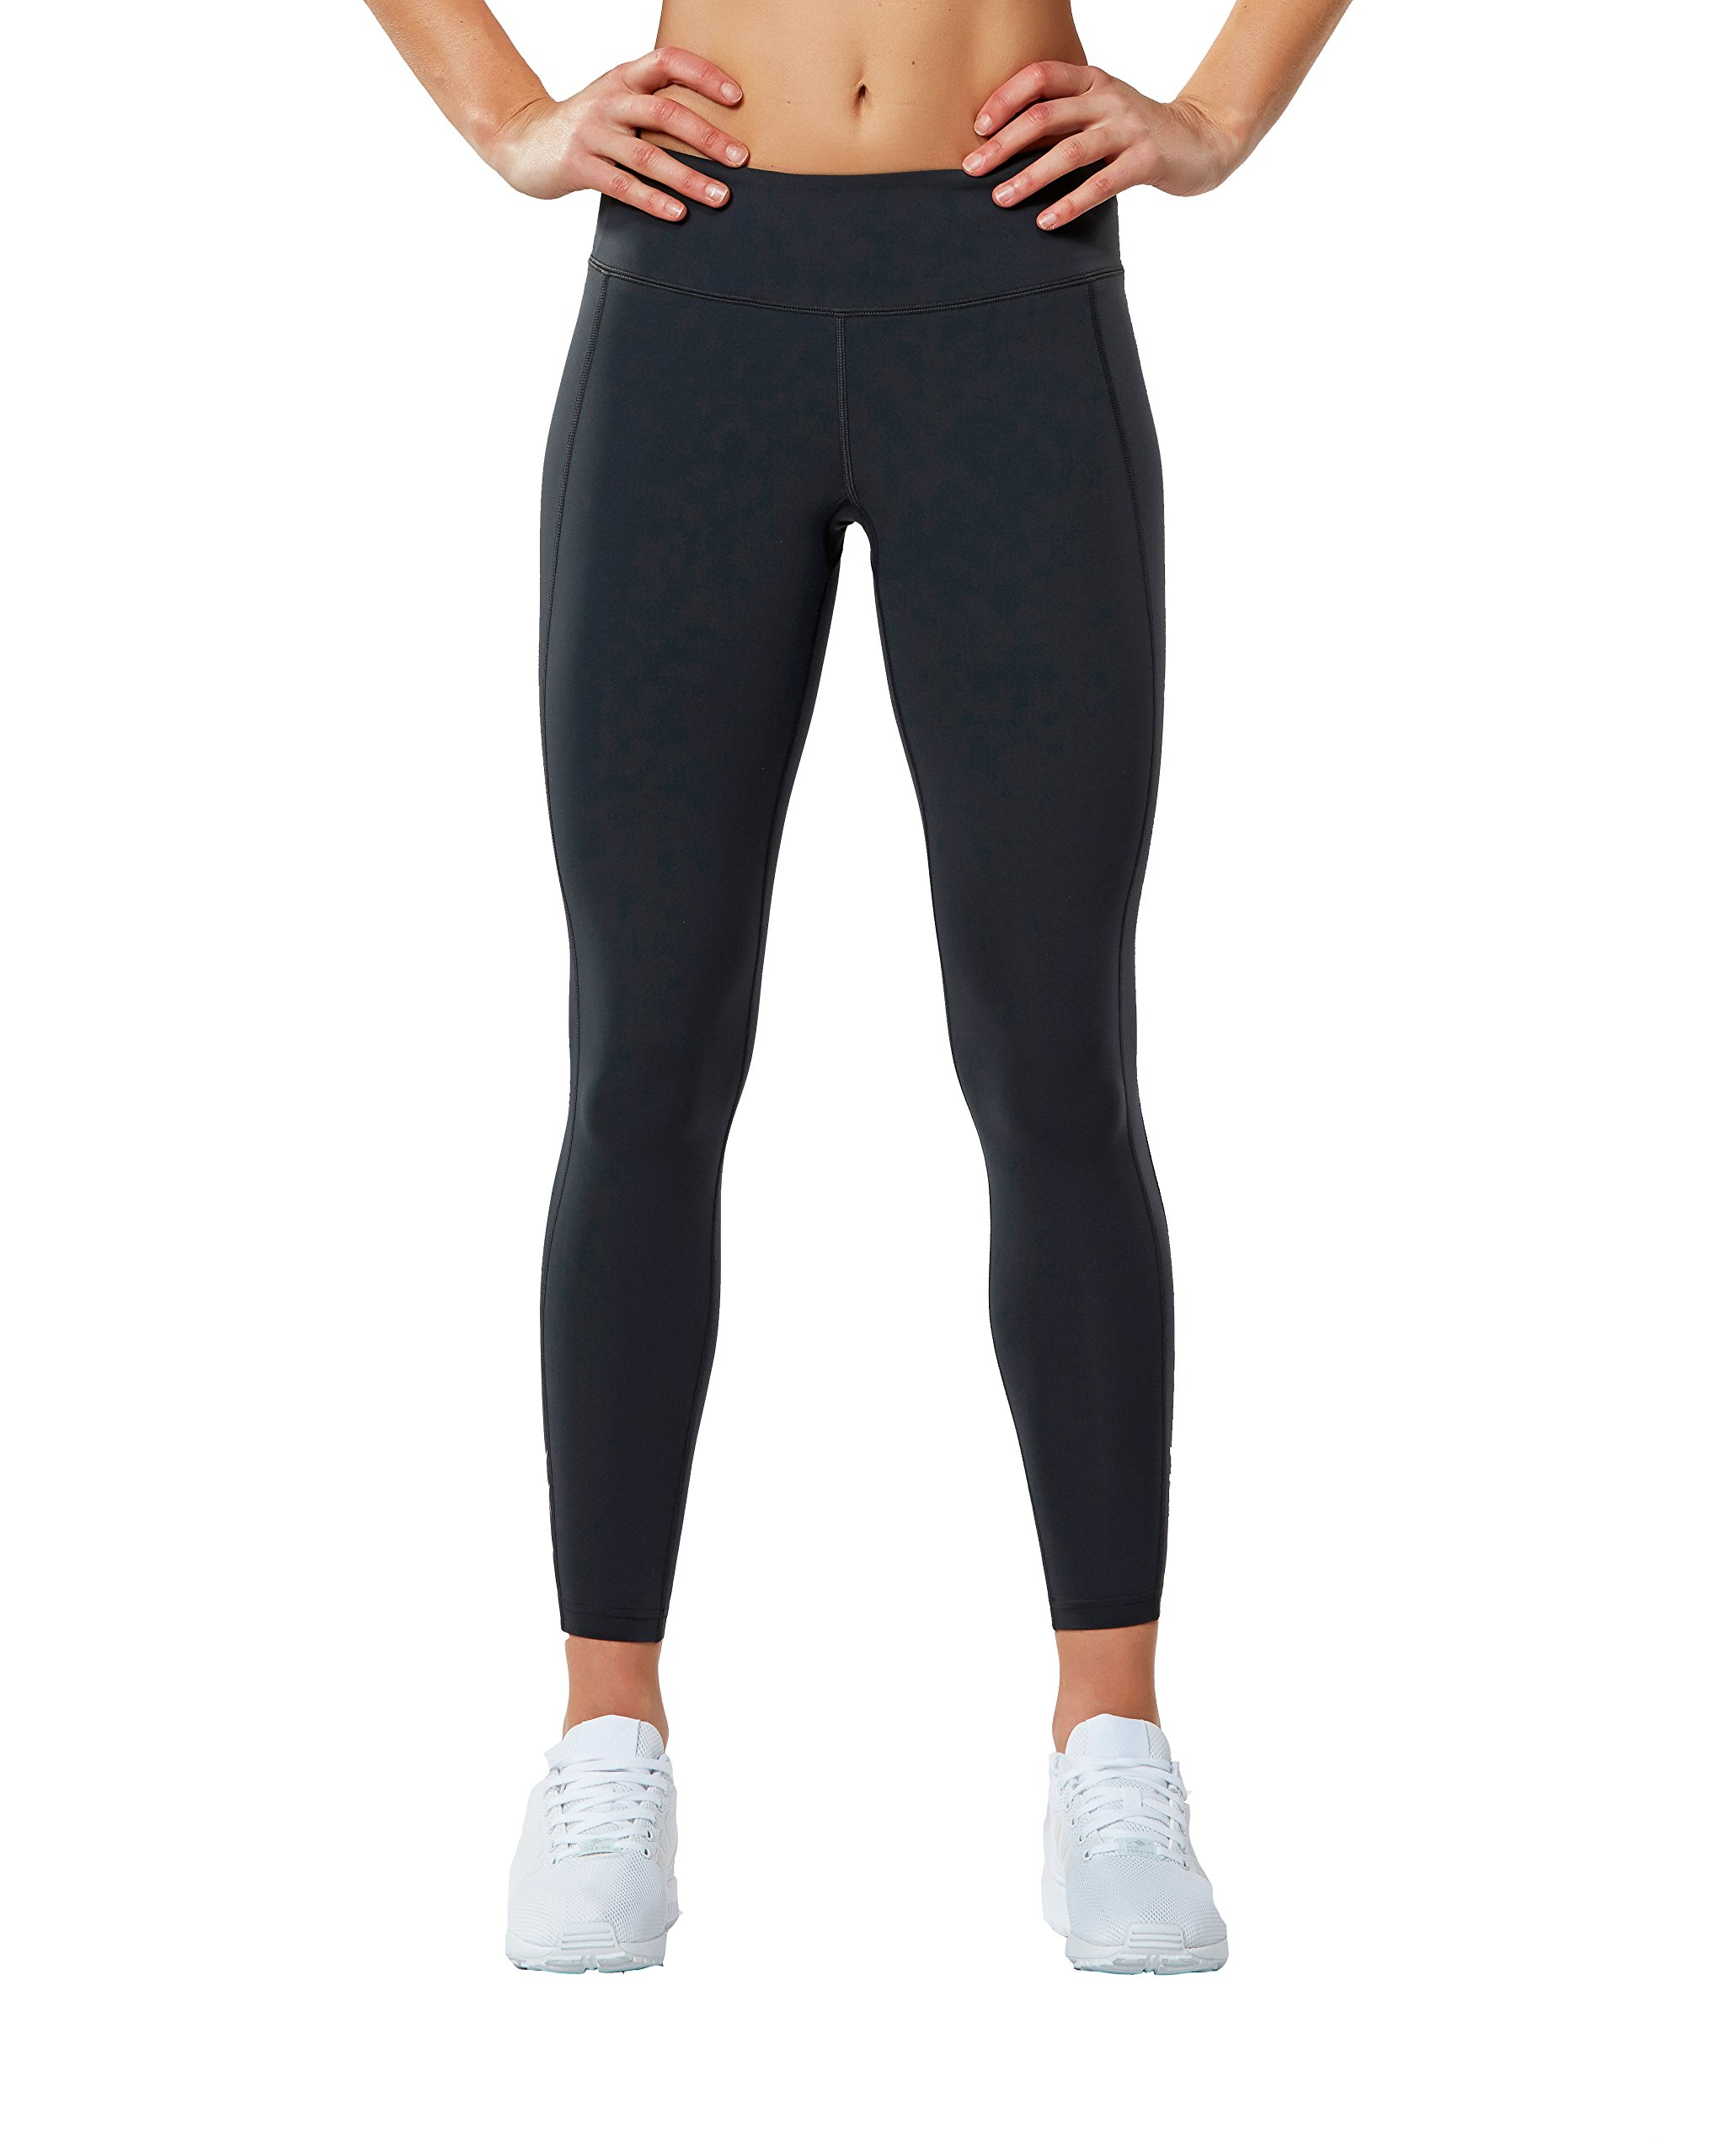 2XU Women's Fitness Compression Tights, Dark Charcoal/Silver, Medium/Tall by 2XU (Image #2)